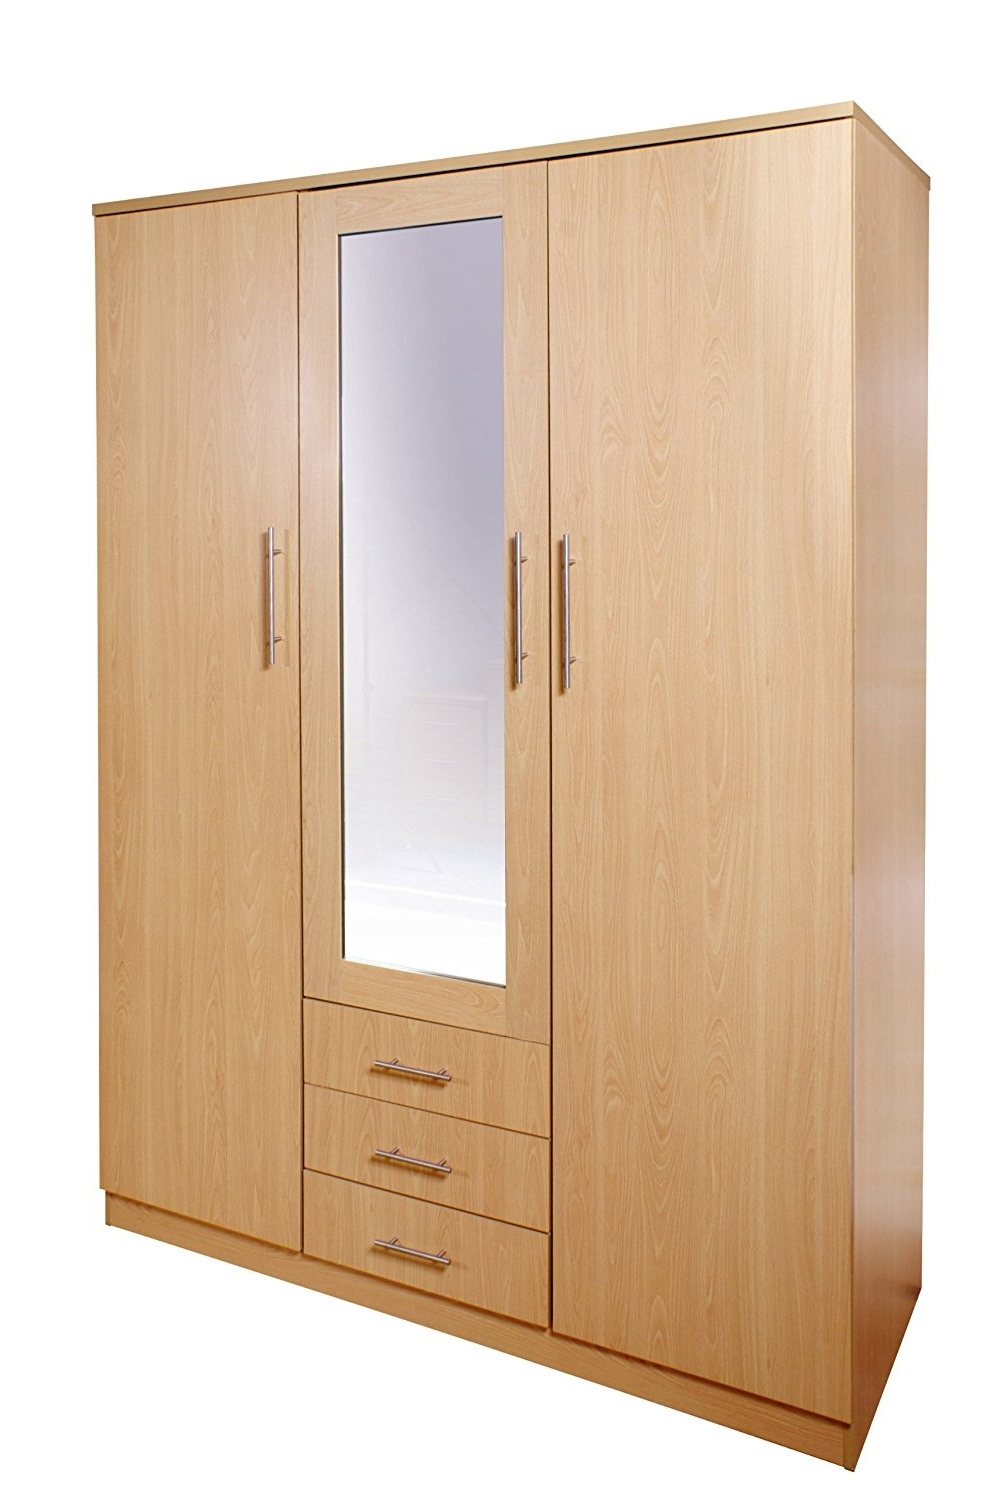 Fashionable White Wardrobes With Mirror Wardrobe Ikea Pax Door Closet Can Make Within Cheap Wardrobes With Mirror (View 8 of 15)